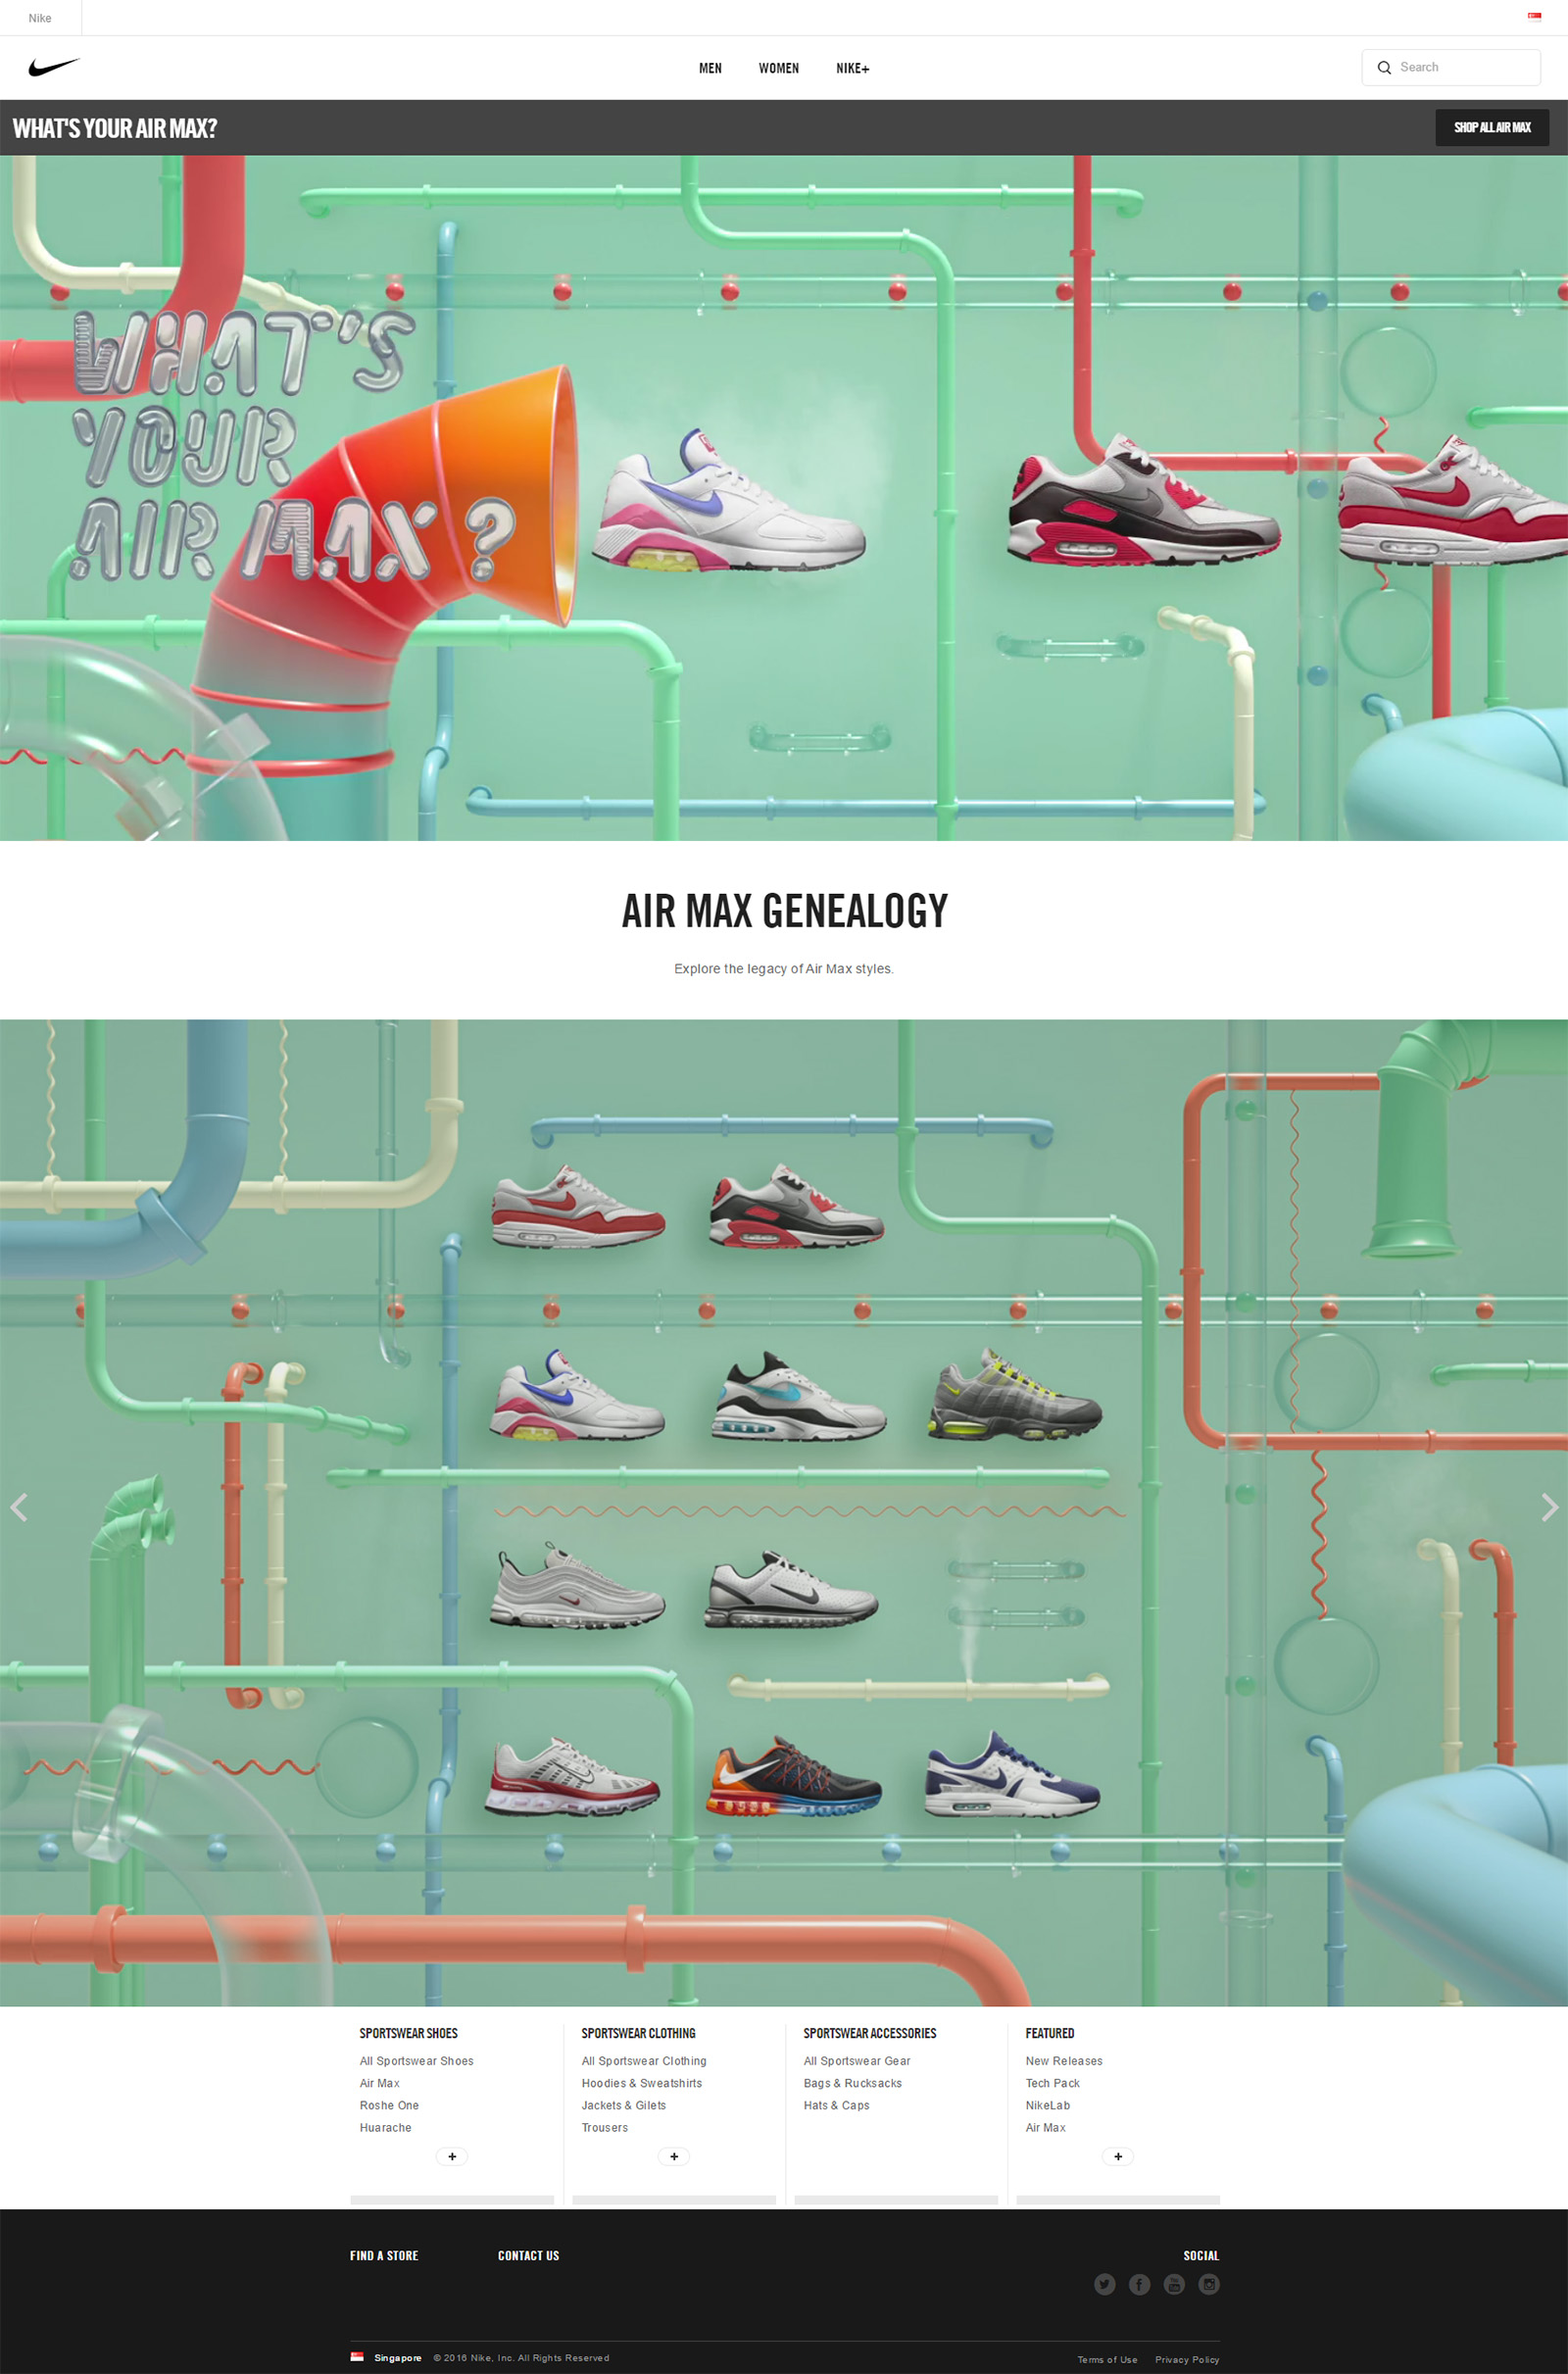 NIKE Air Max Day website design assets by Machineast design studio in Singapore. Street culture and sneakers.